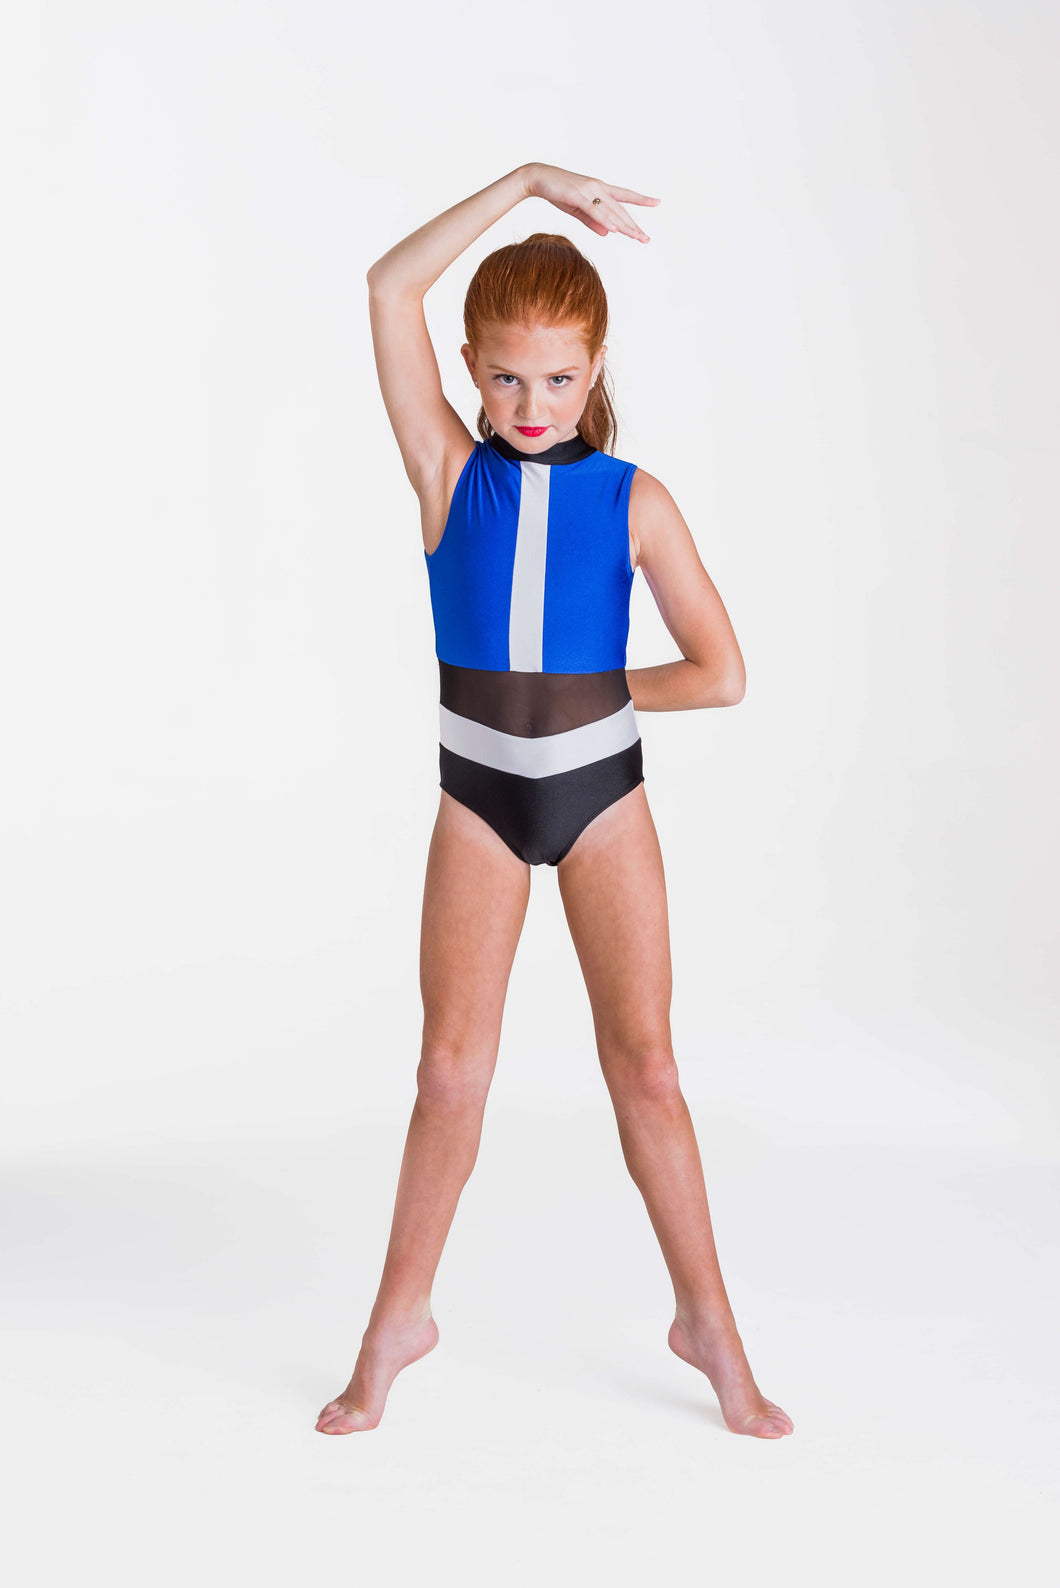 Studio 7 Felicity Leotard Child - Royal Blue